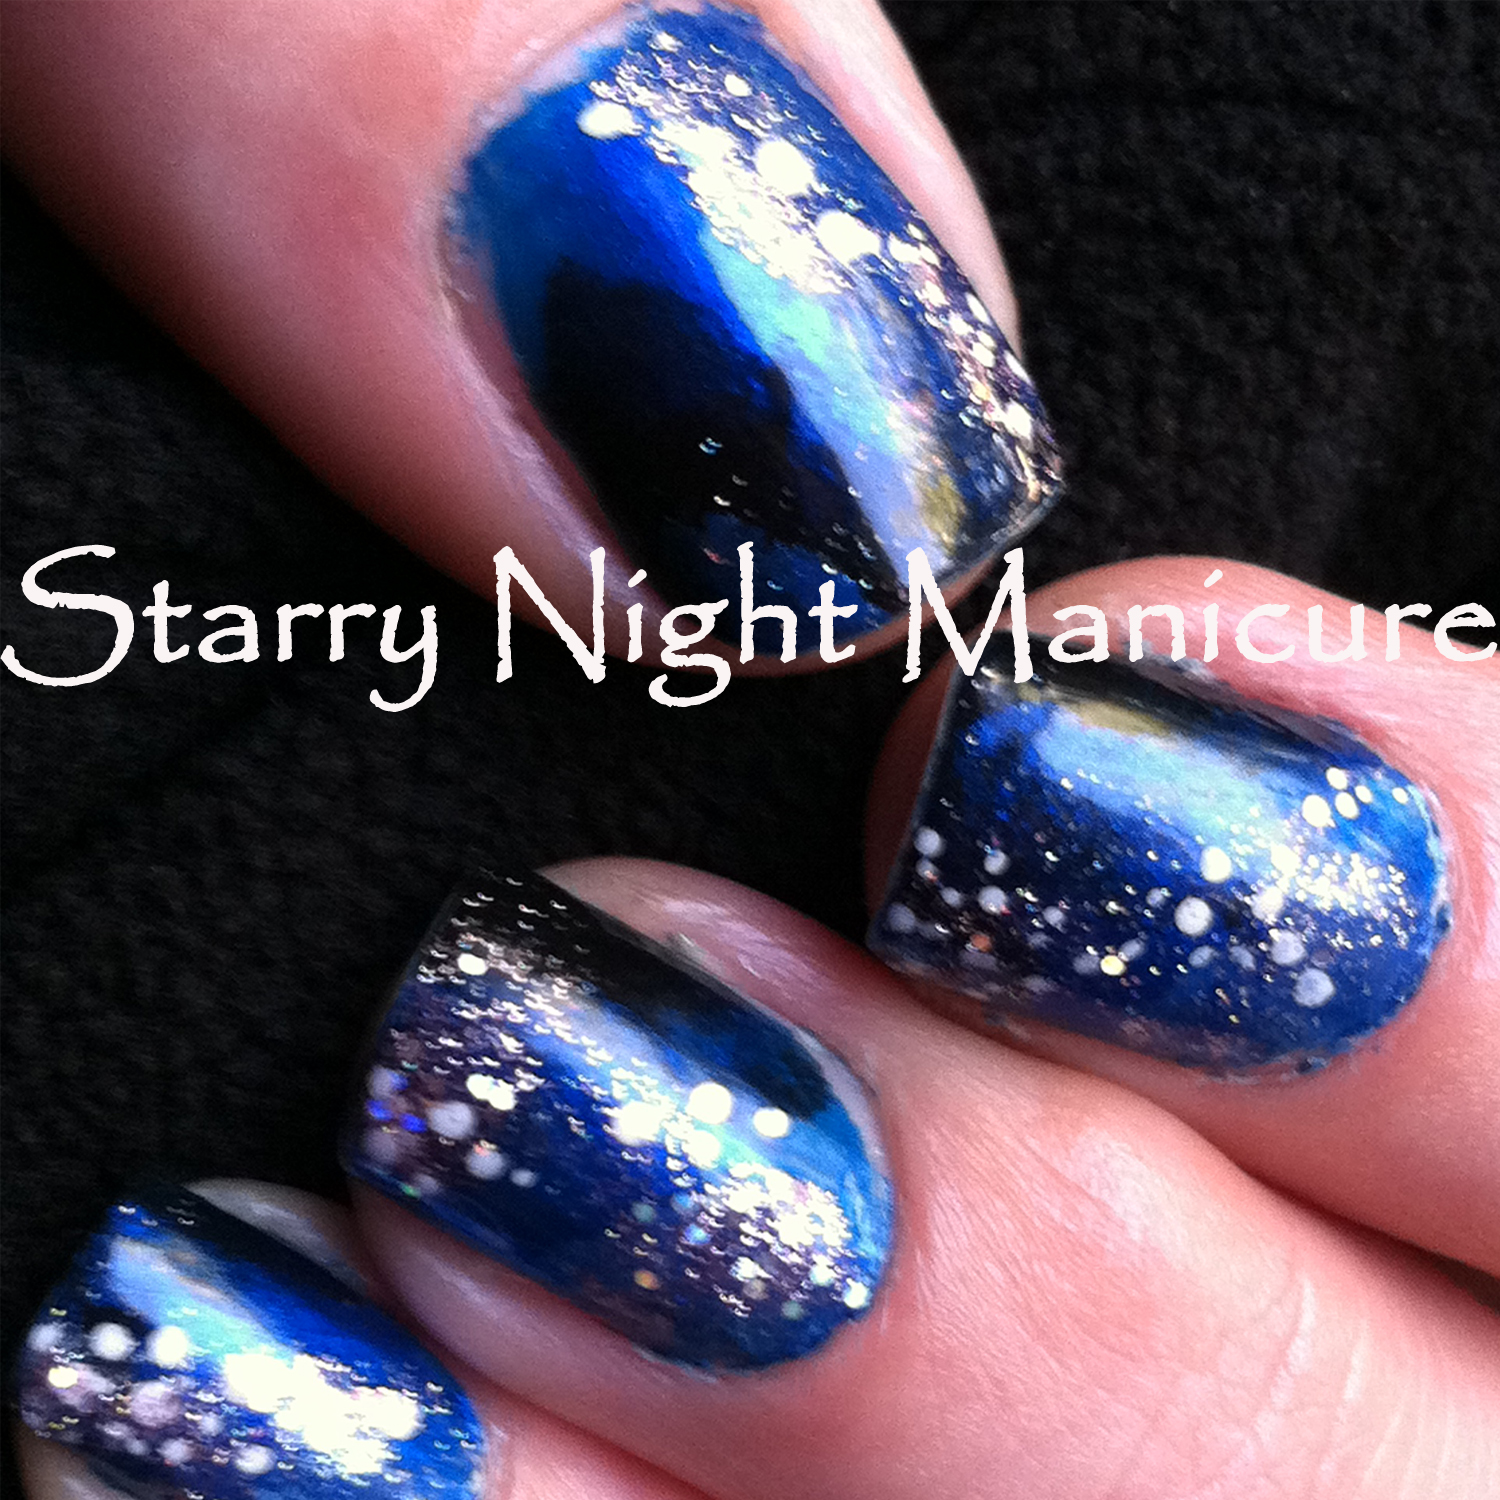 starry night manicure, blue black manicure